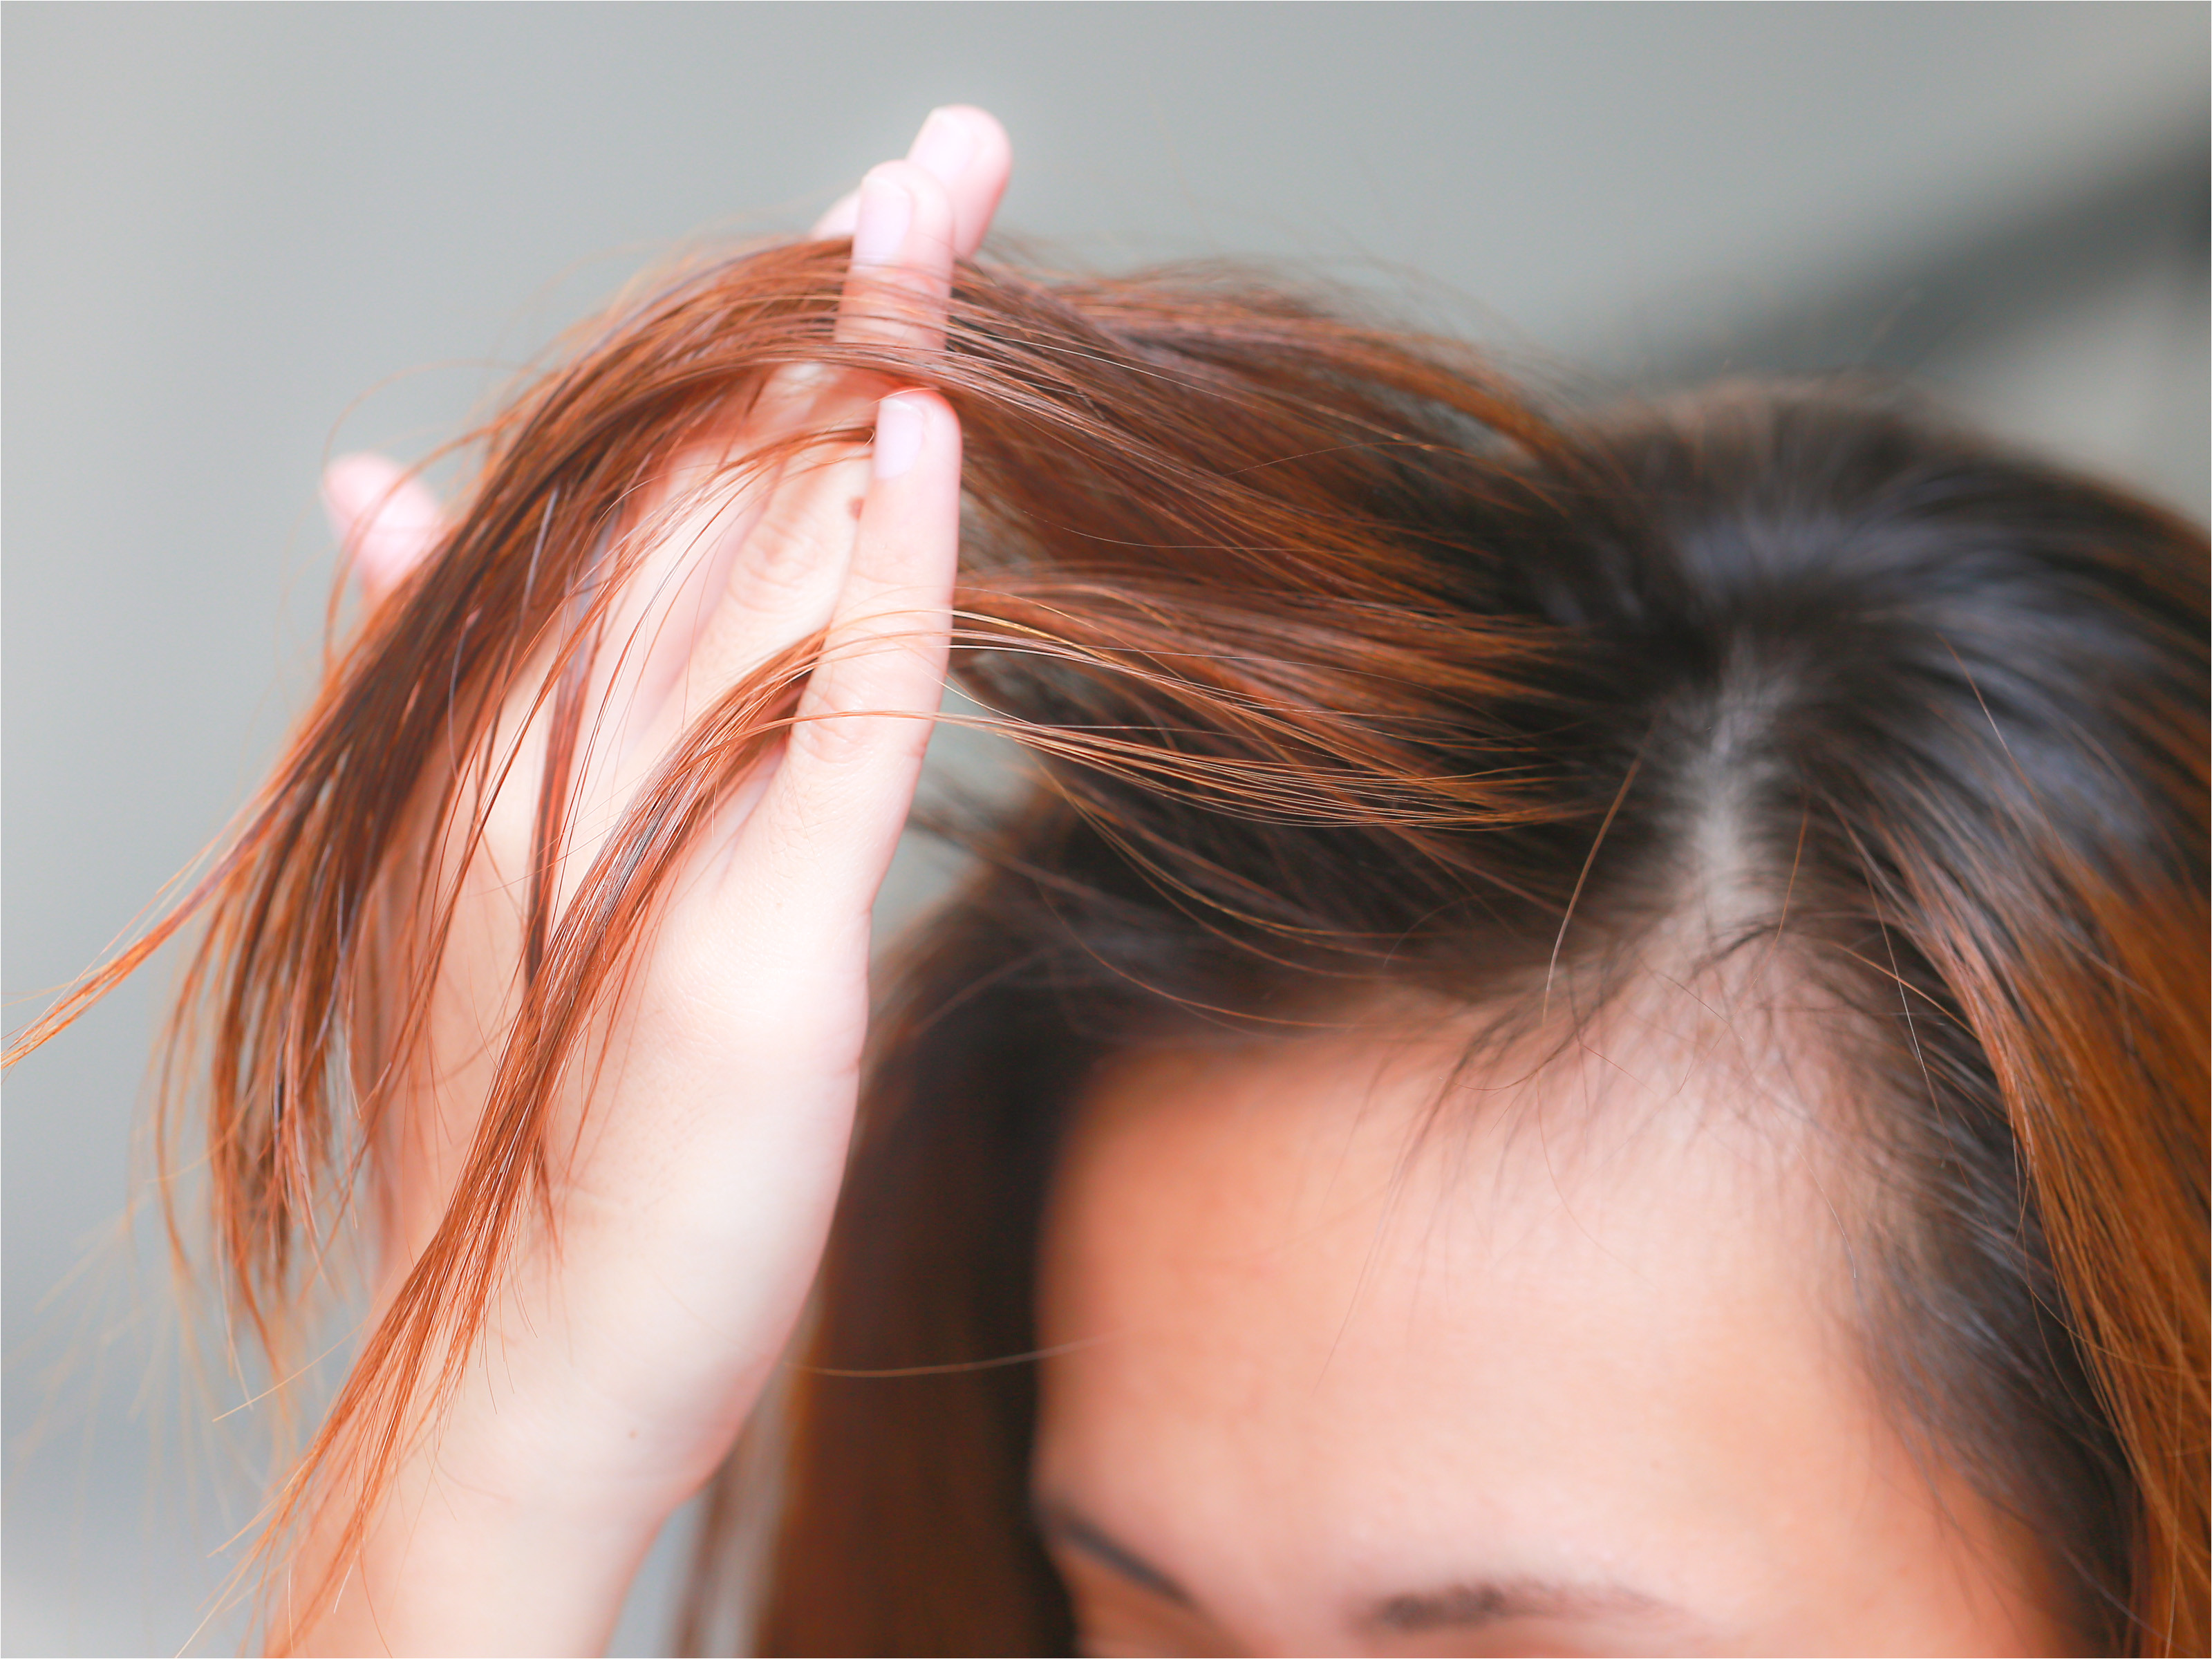 Hairstyles after Applying Oil How to Apply Castor Oil for Hair 15 Steps with